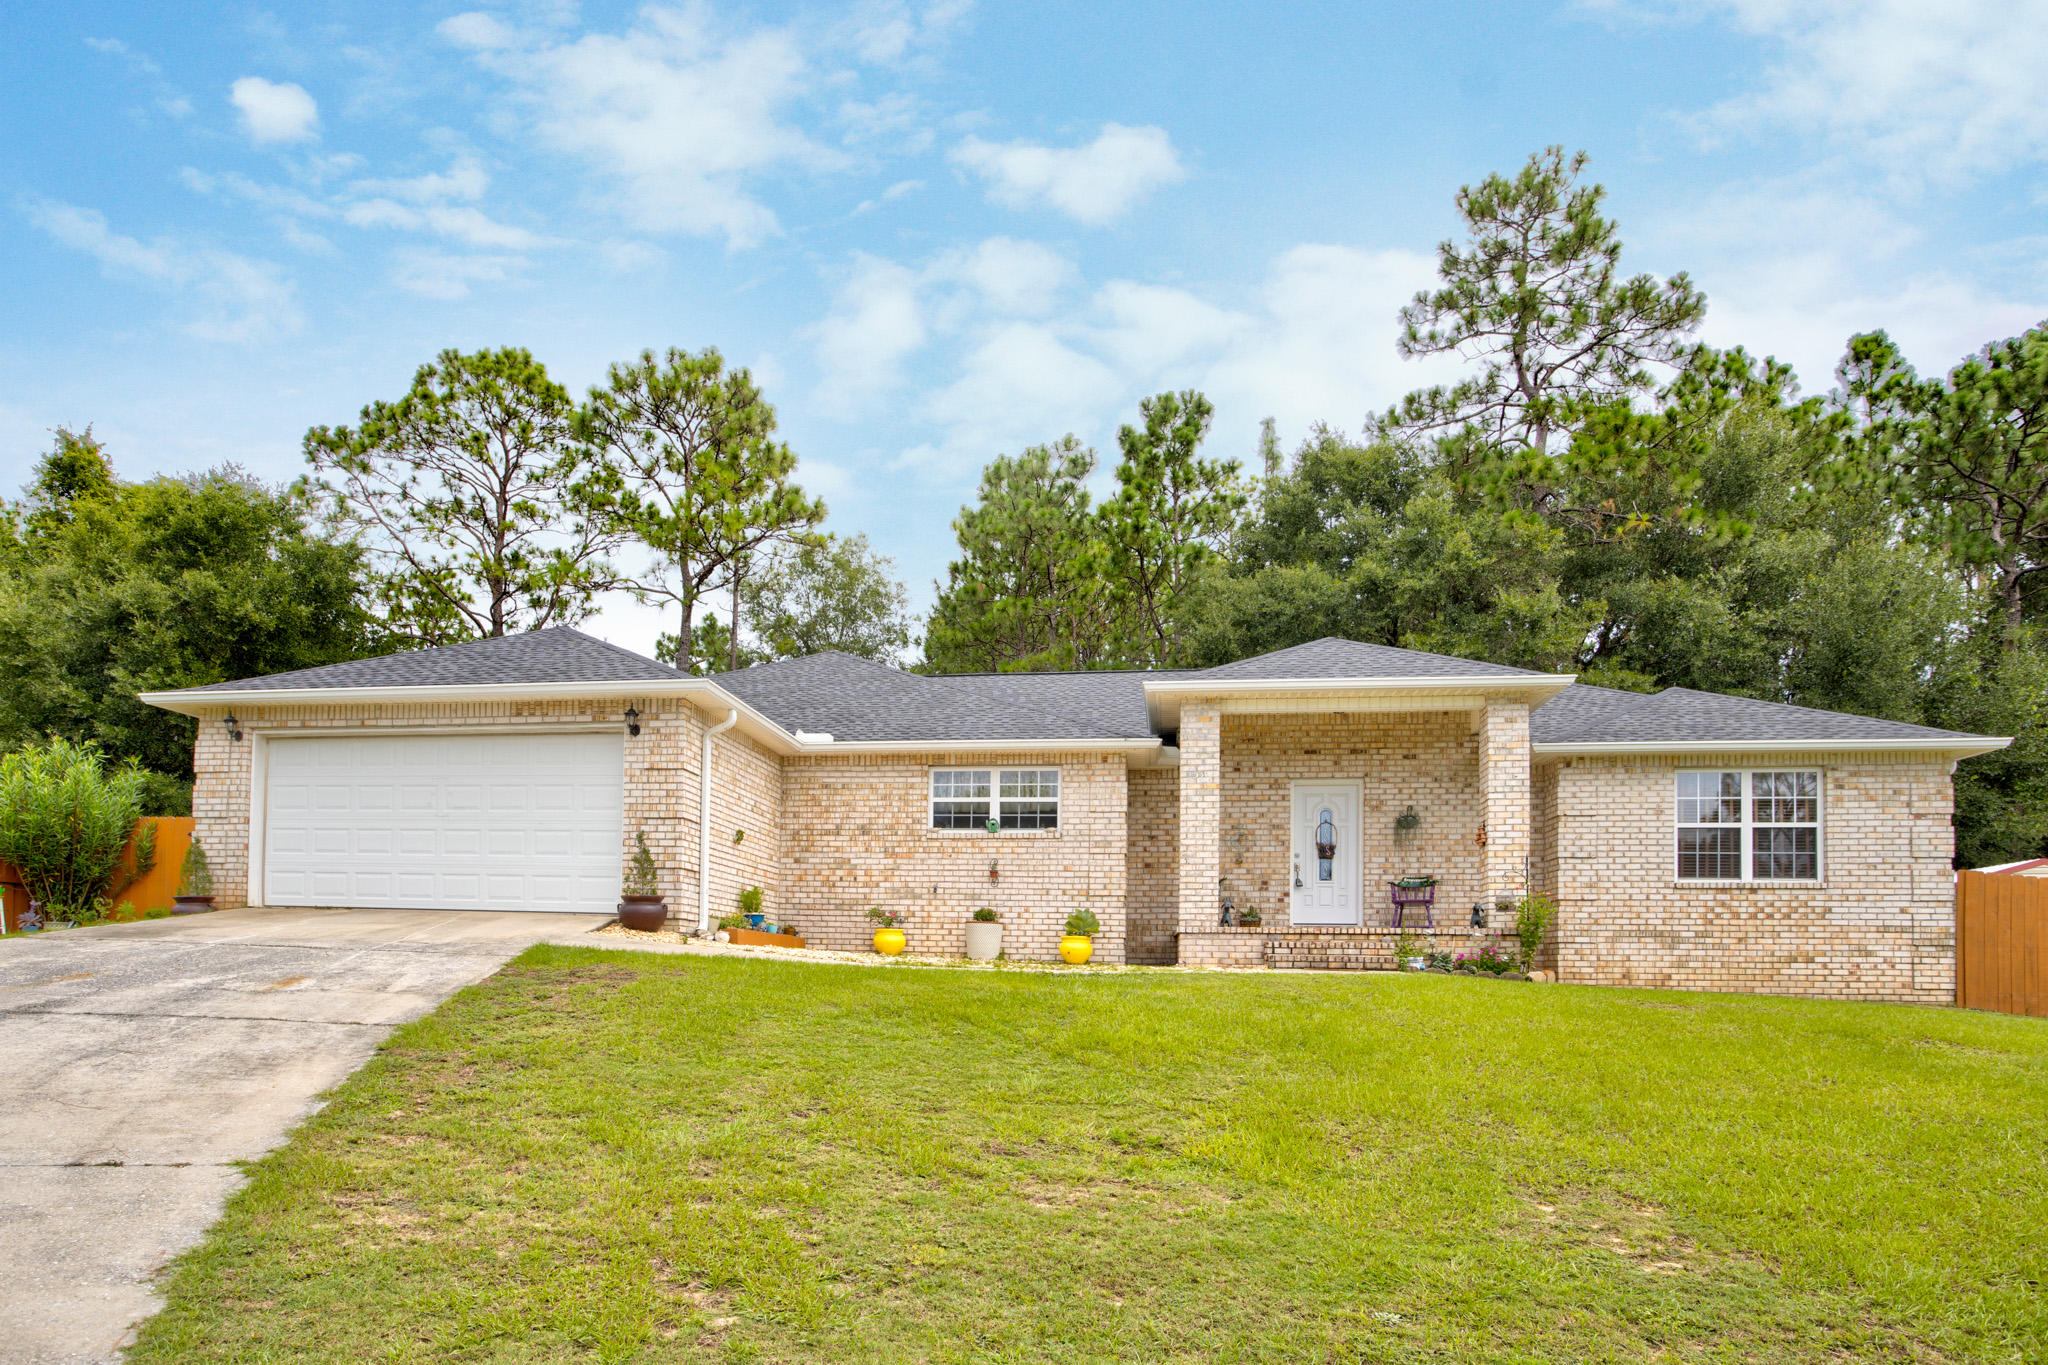 Photo of home for sale at 156 Tranquility, Crestview FL